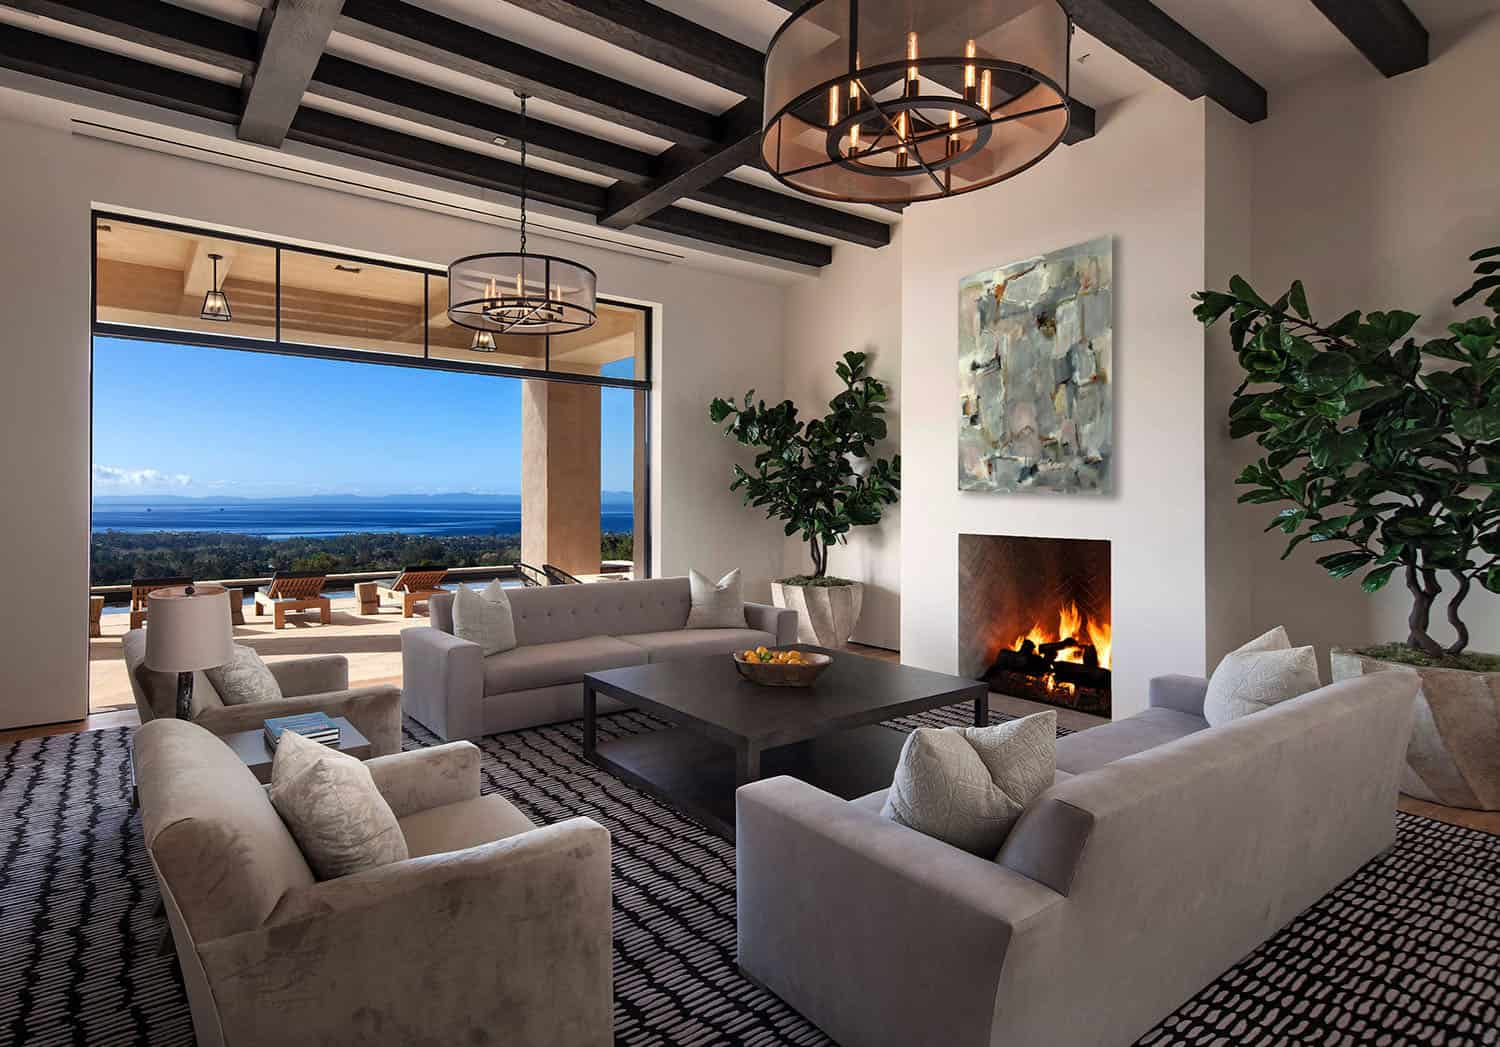 Luxury hilltop residence embraces scenic landscape in Santa Barbara